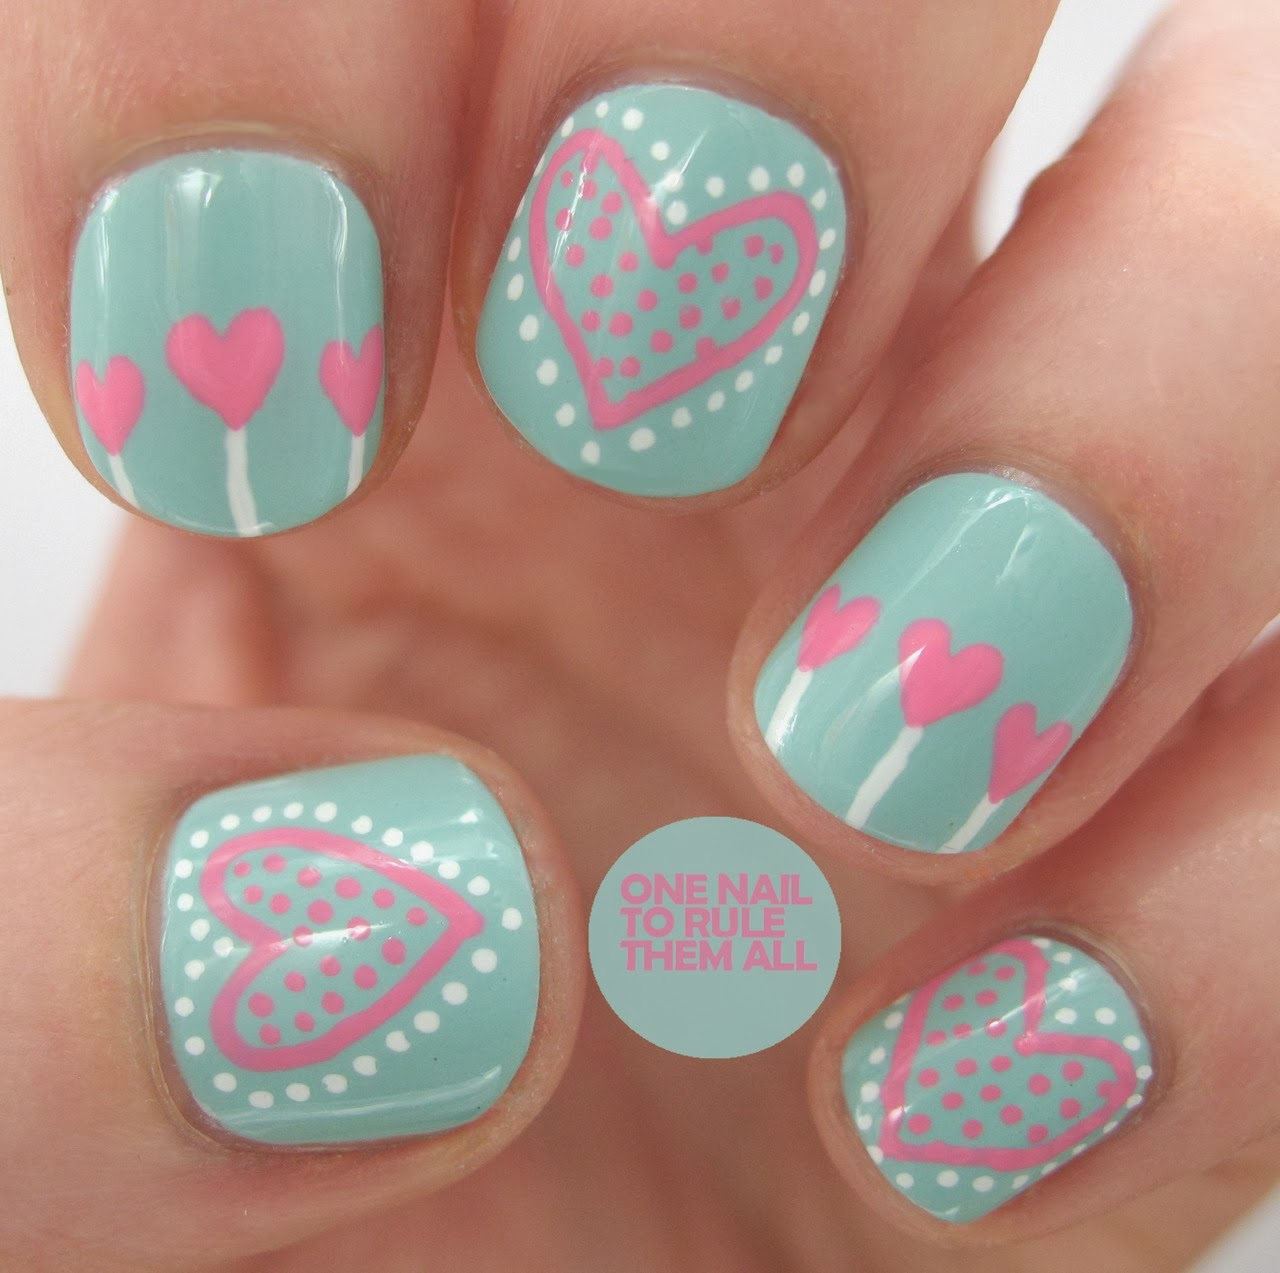 Ideas Of Nail Art: Cute Nail Art Ideas